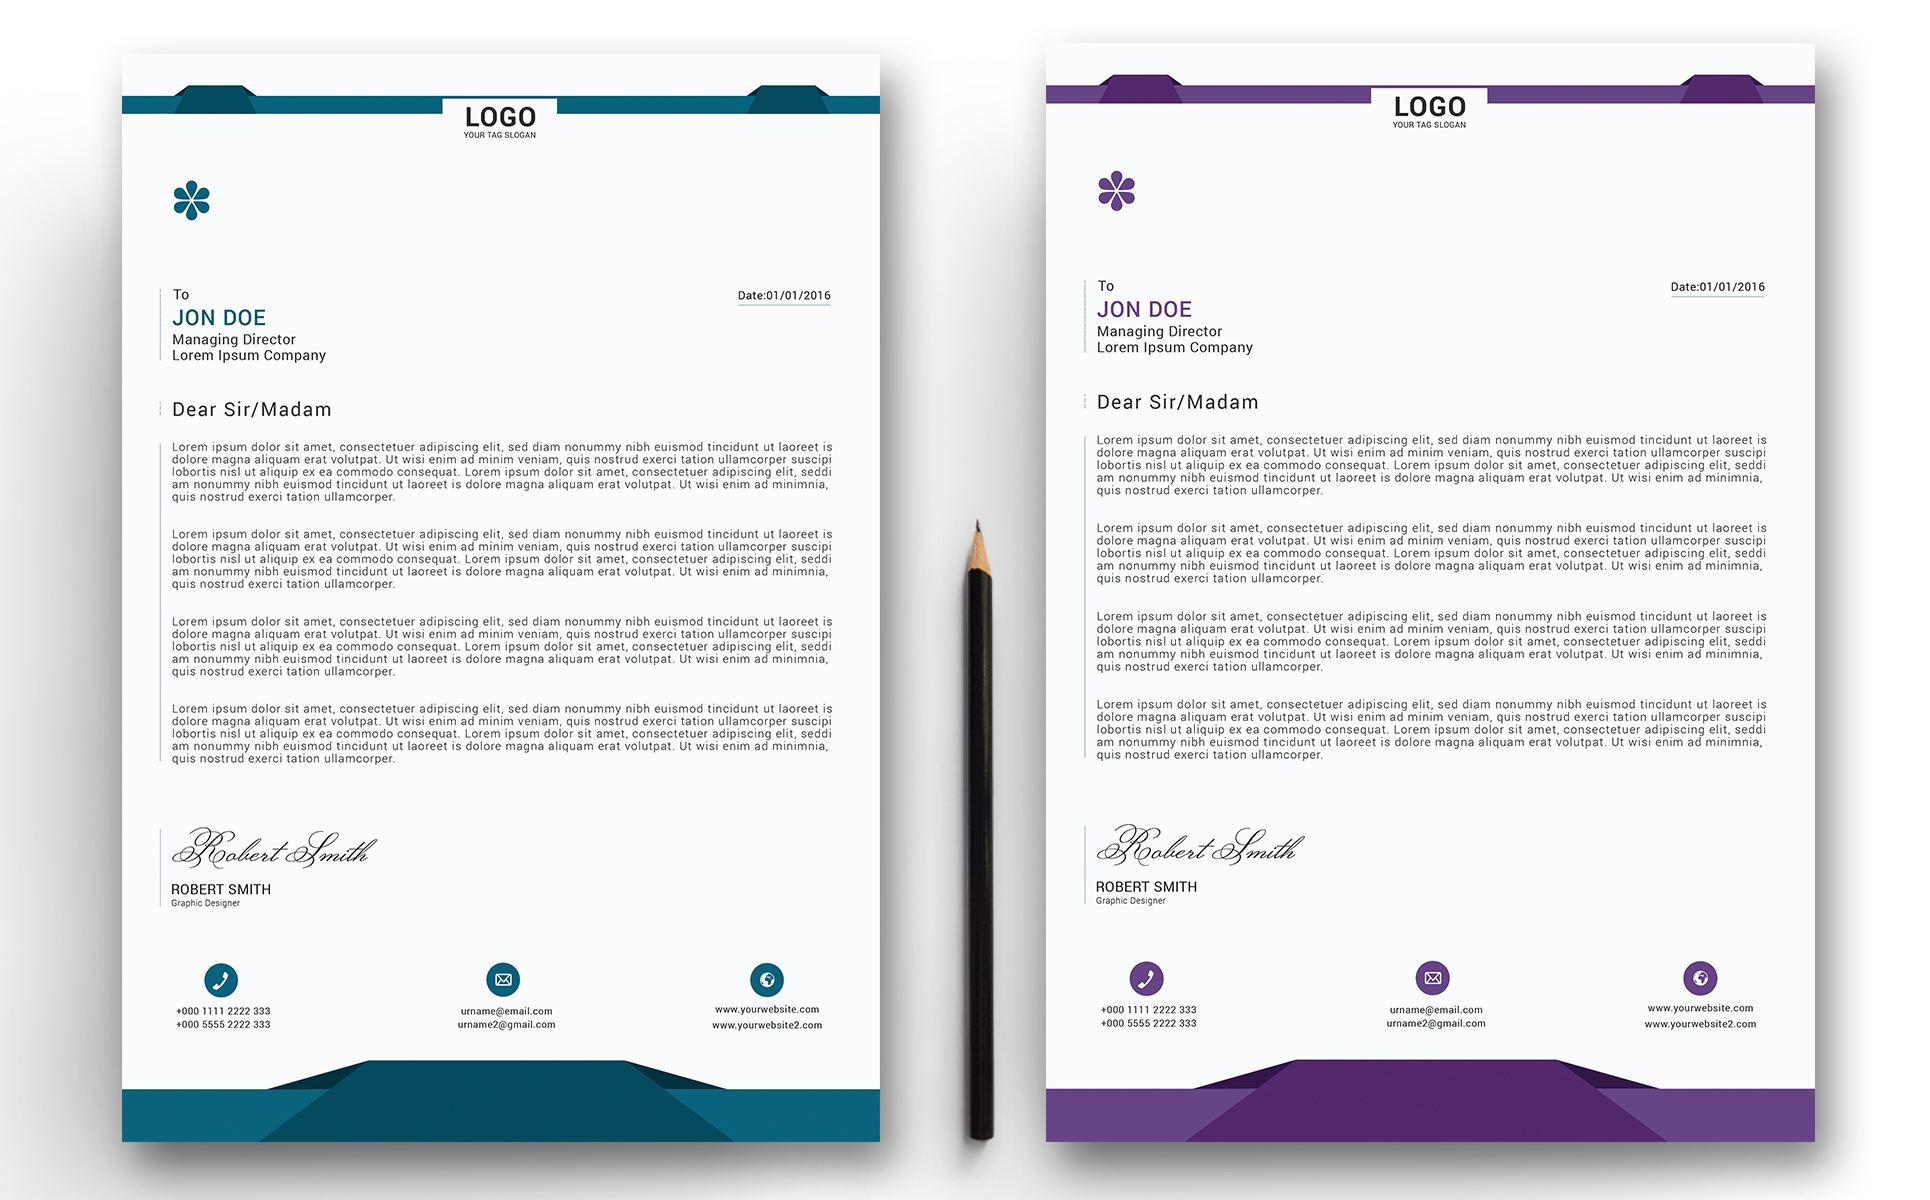 Riha – Letterhead / Cover Letter Corporate Identity